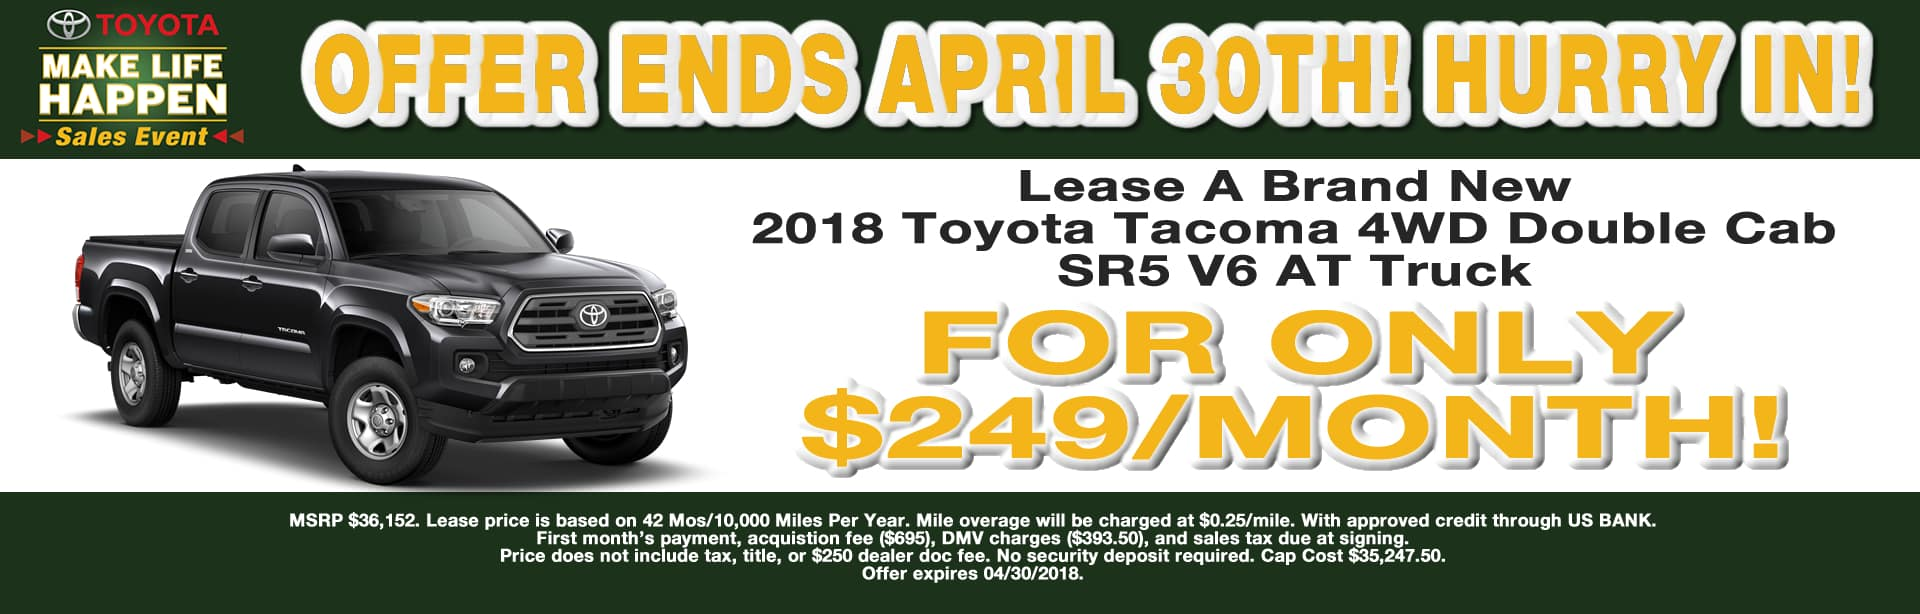 TACOMA LEASE SPECIAL CAIN TOYOTA NORTH CANTON OHIO